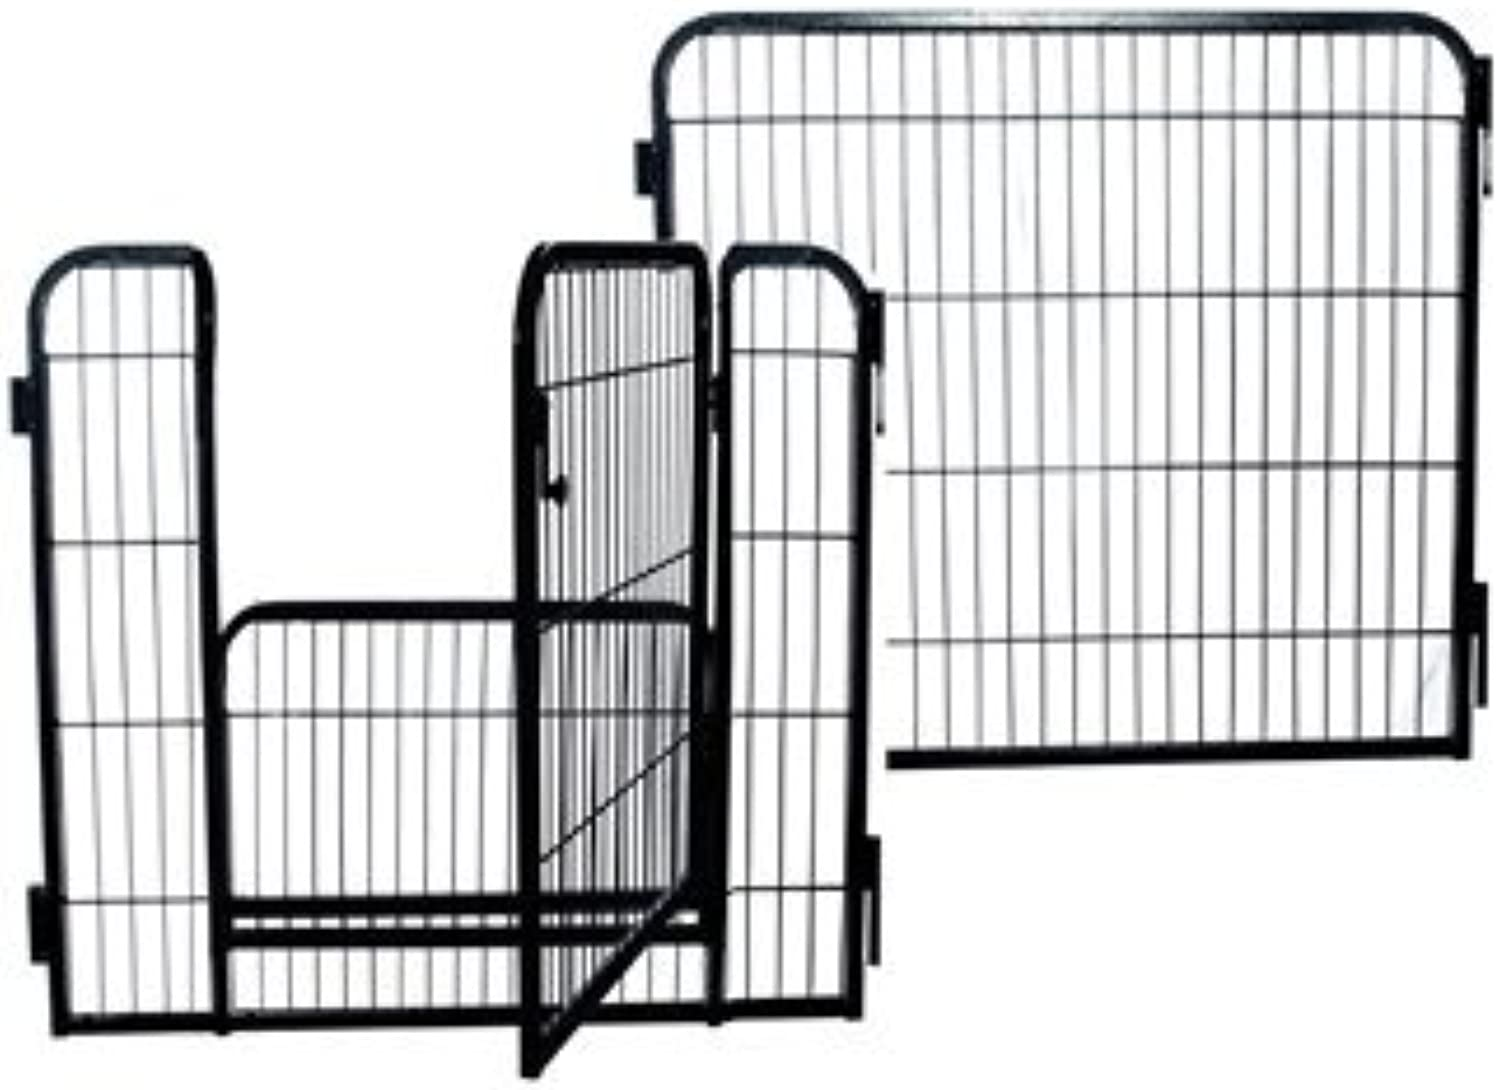 31ins set of gated   plain panels to extend Crufts Freedom Play Pen  27ins high